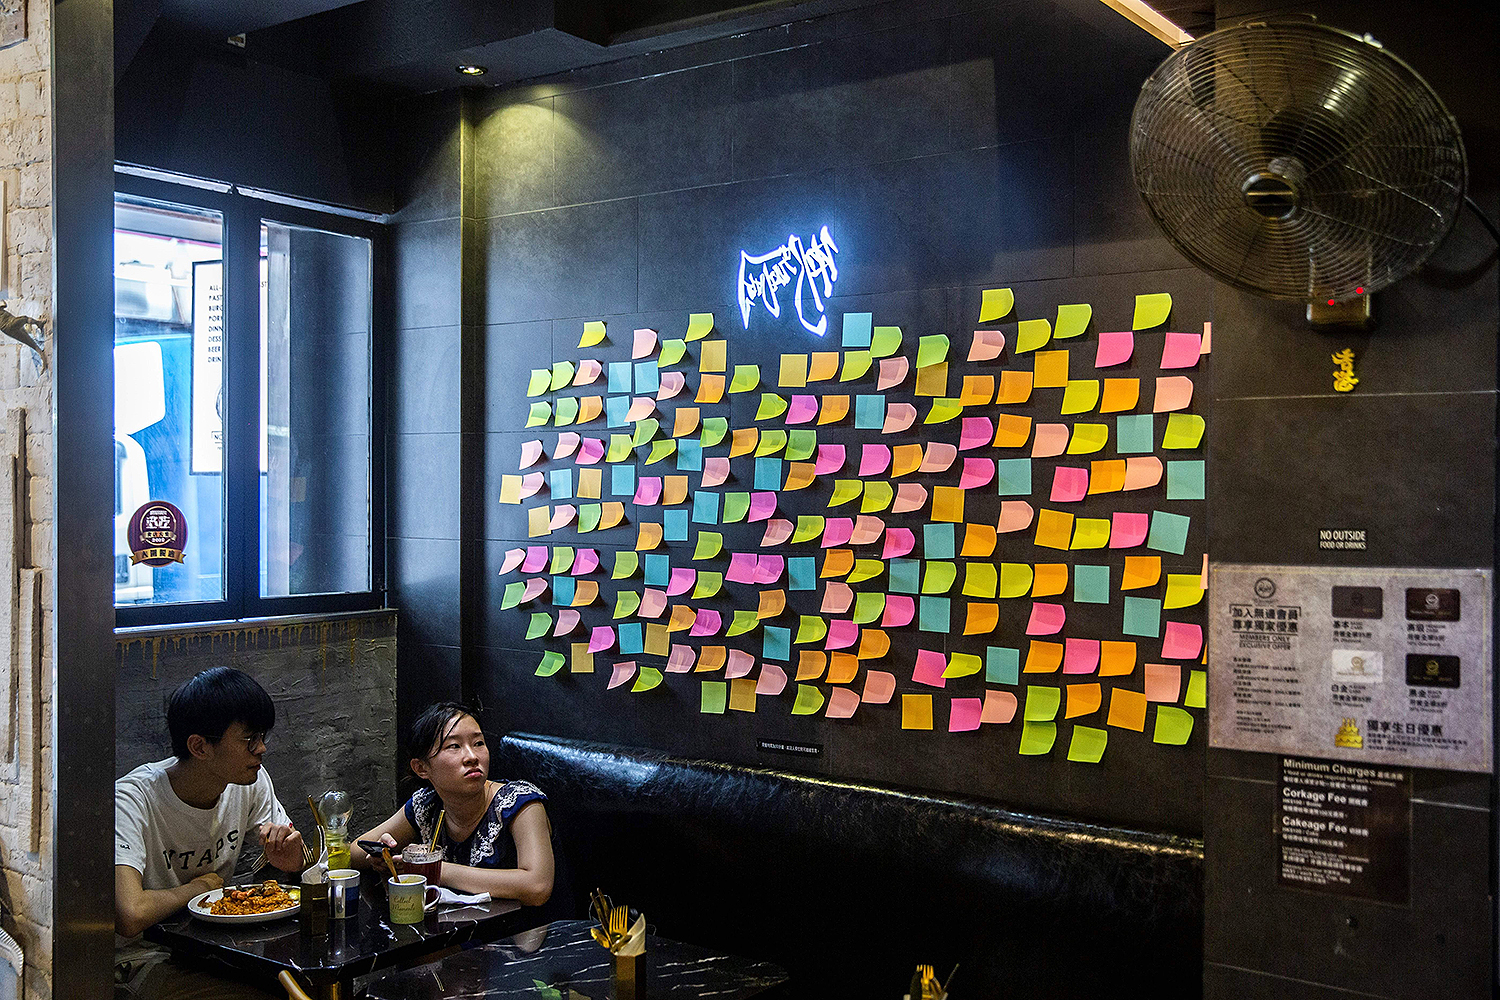 Customers sit near blank notes on a wall inside a pro-democracy restaurant in Hong Kong on July 3—a response to a new national security law introduced in the city that makes political views, slogans, and signs that advocate for Hong Kong's independence or liberation illegal. ISAAC LAWRENCE/AFP via Getty Images